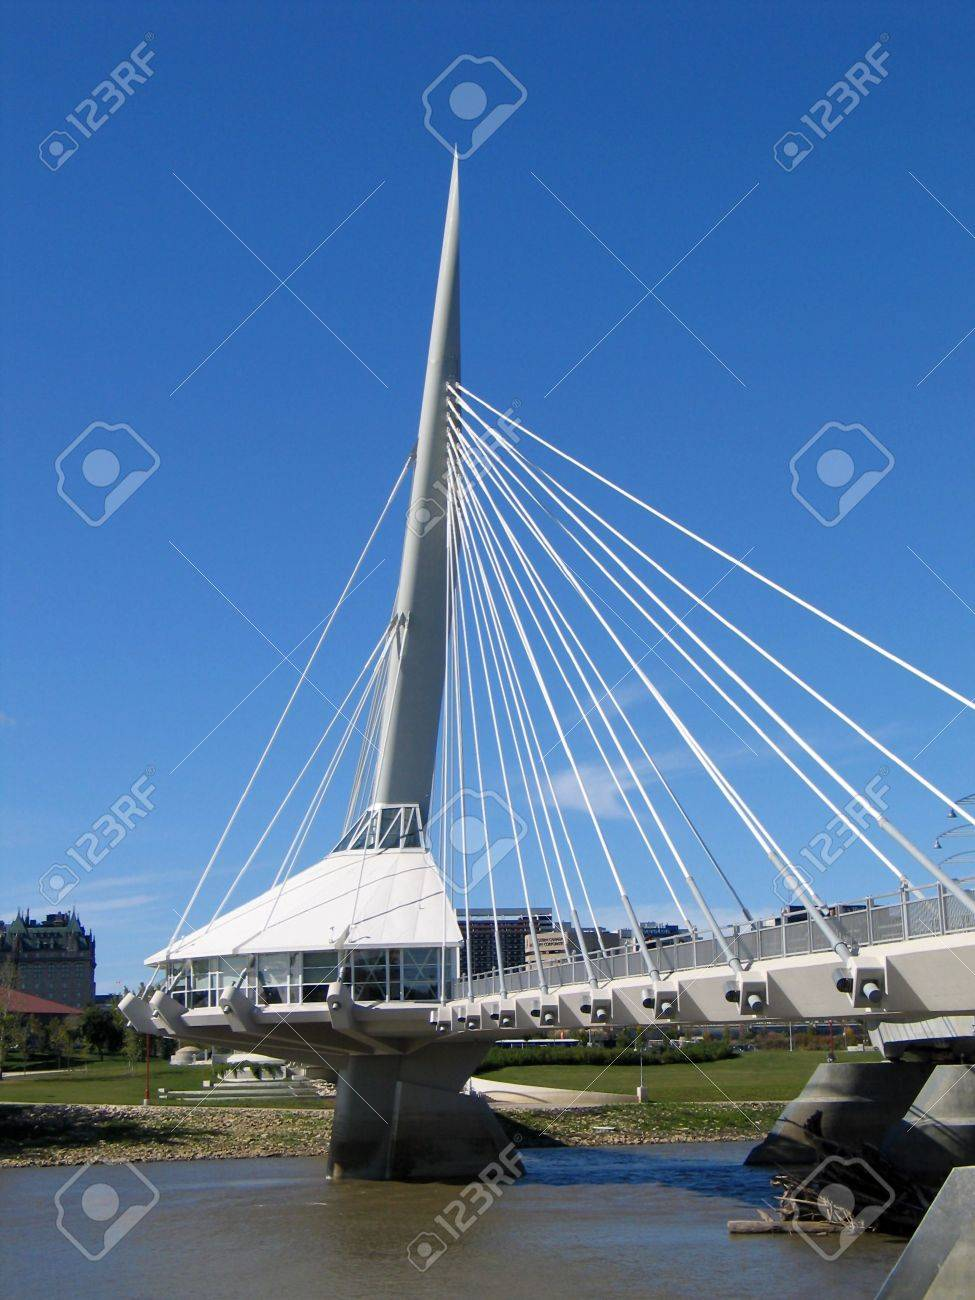 Provencher Bridge, in Winnipeg, Manitoba, Canada. Stock Photo - 417606